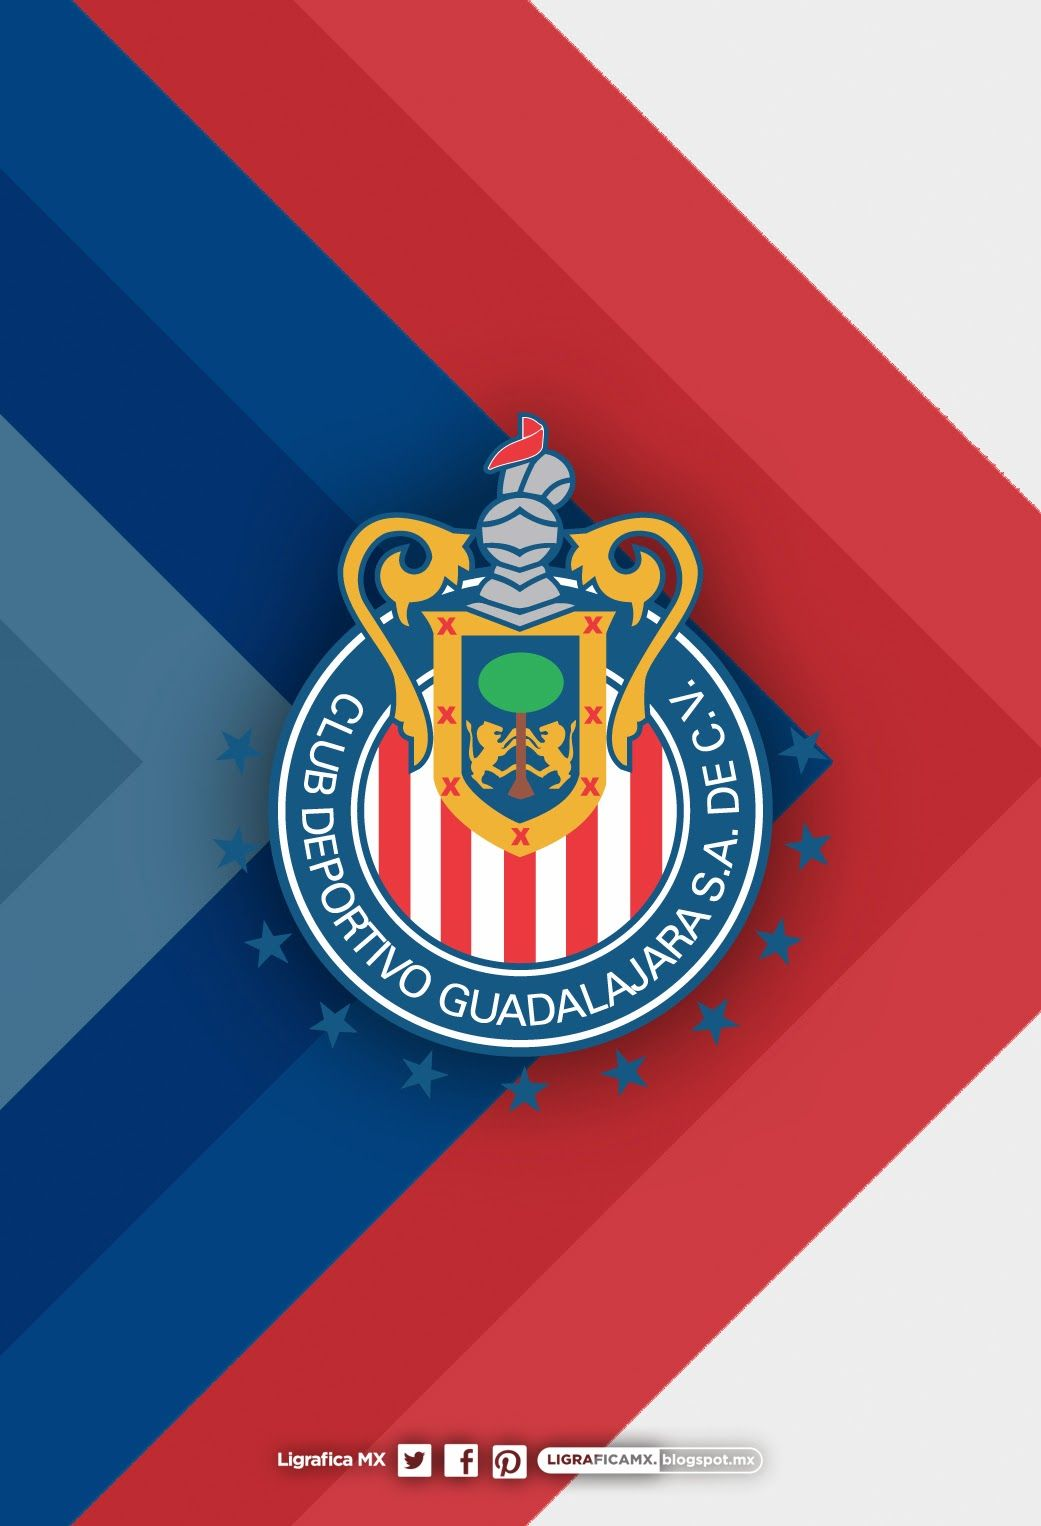 1041x1526 - C.D. Guadalajara Wallpapers 2